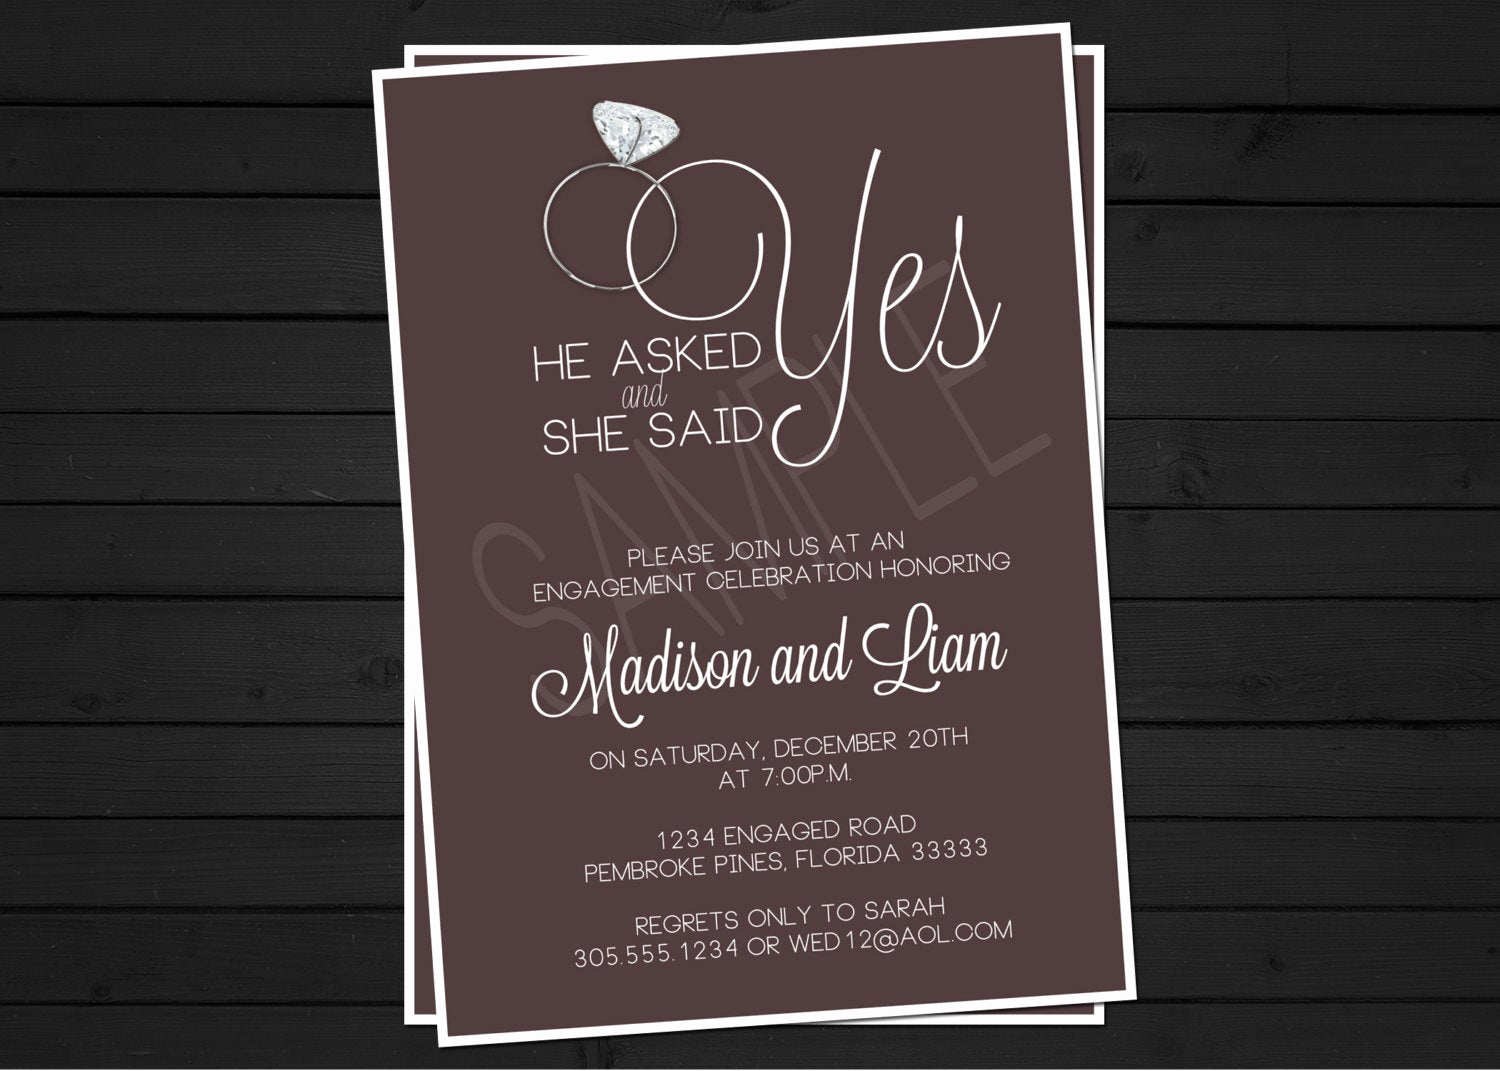 Engagement Party Invitation Templates Best Of Engagement Party Invitation Digital File by Shestutucutebtq